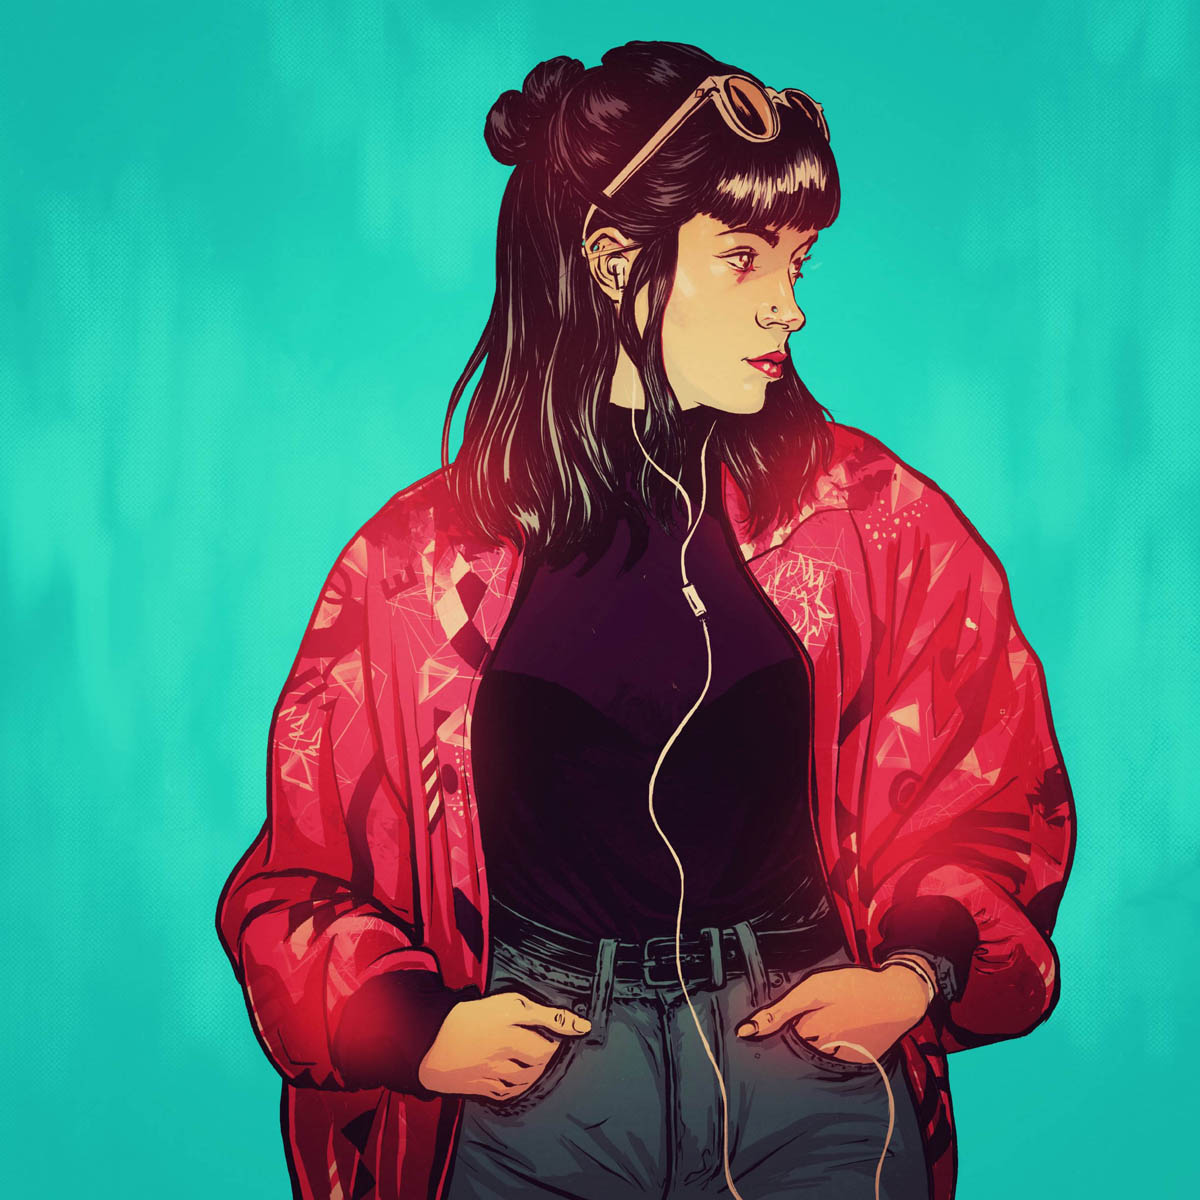 music procreate digital illustration app by raul allen